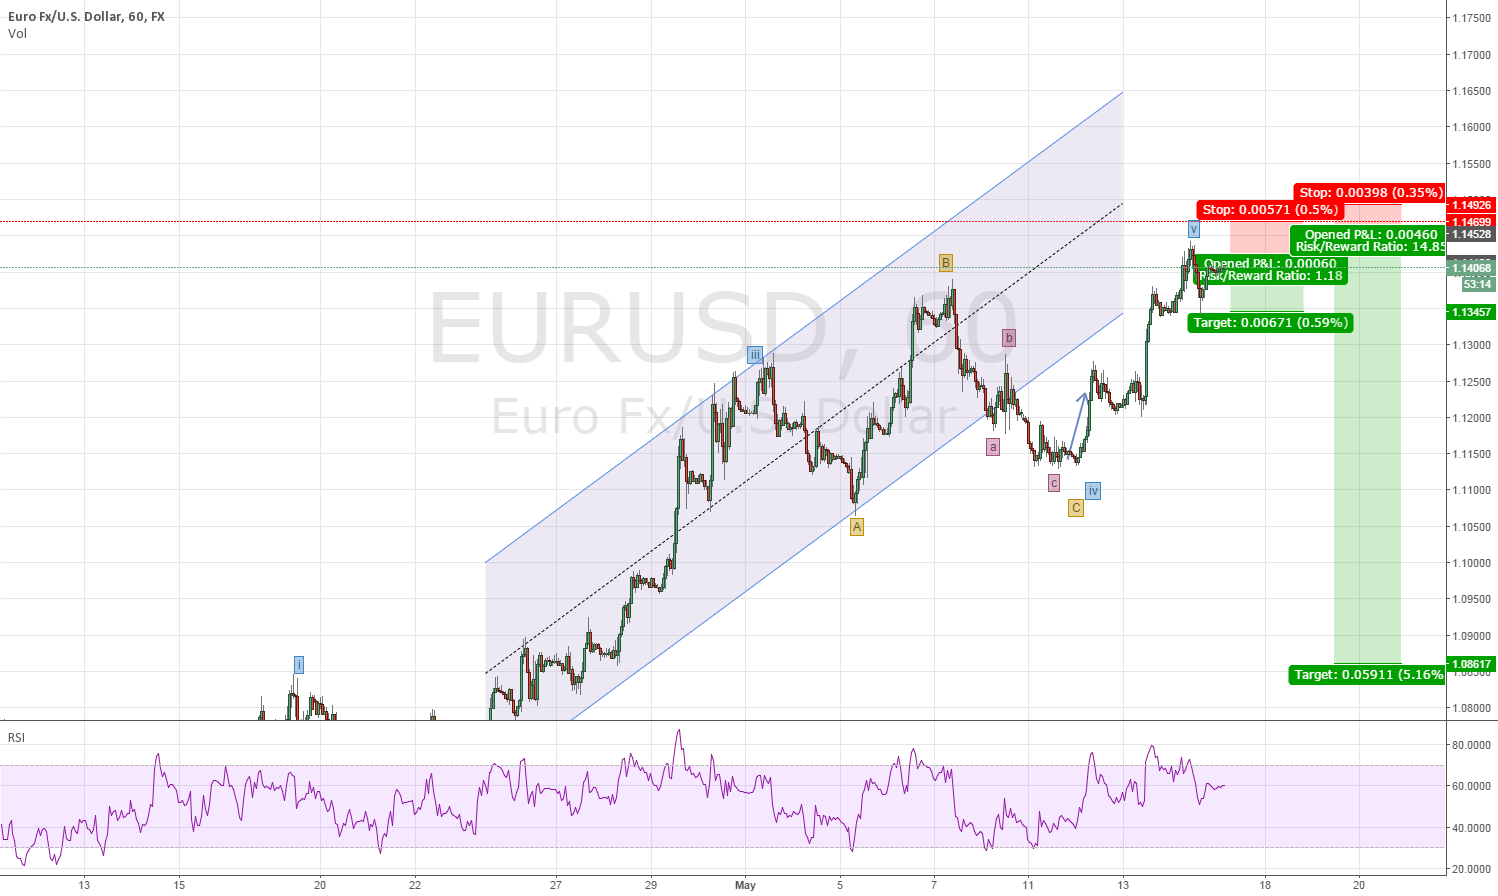 All Good things come to an end so Does EURUSD